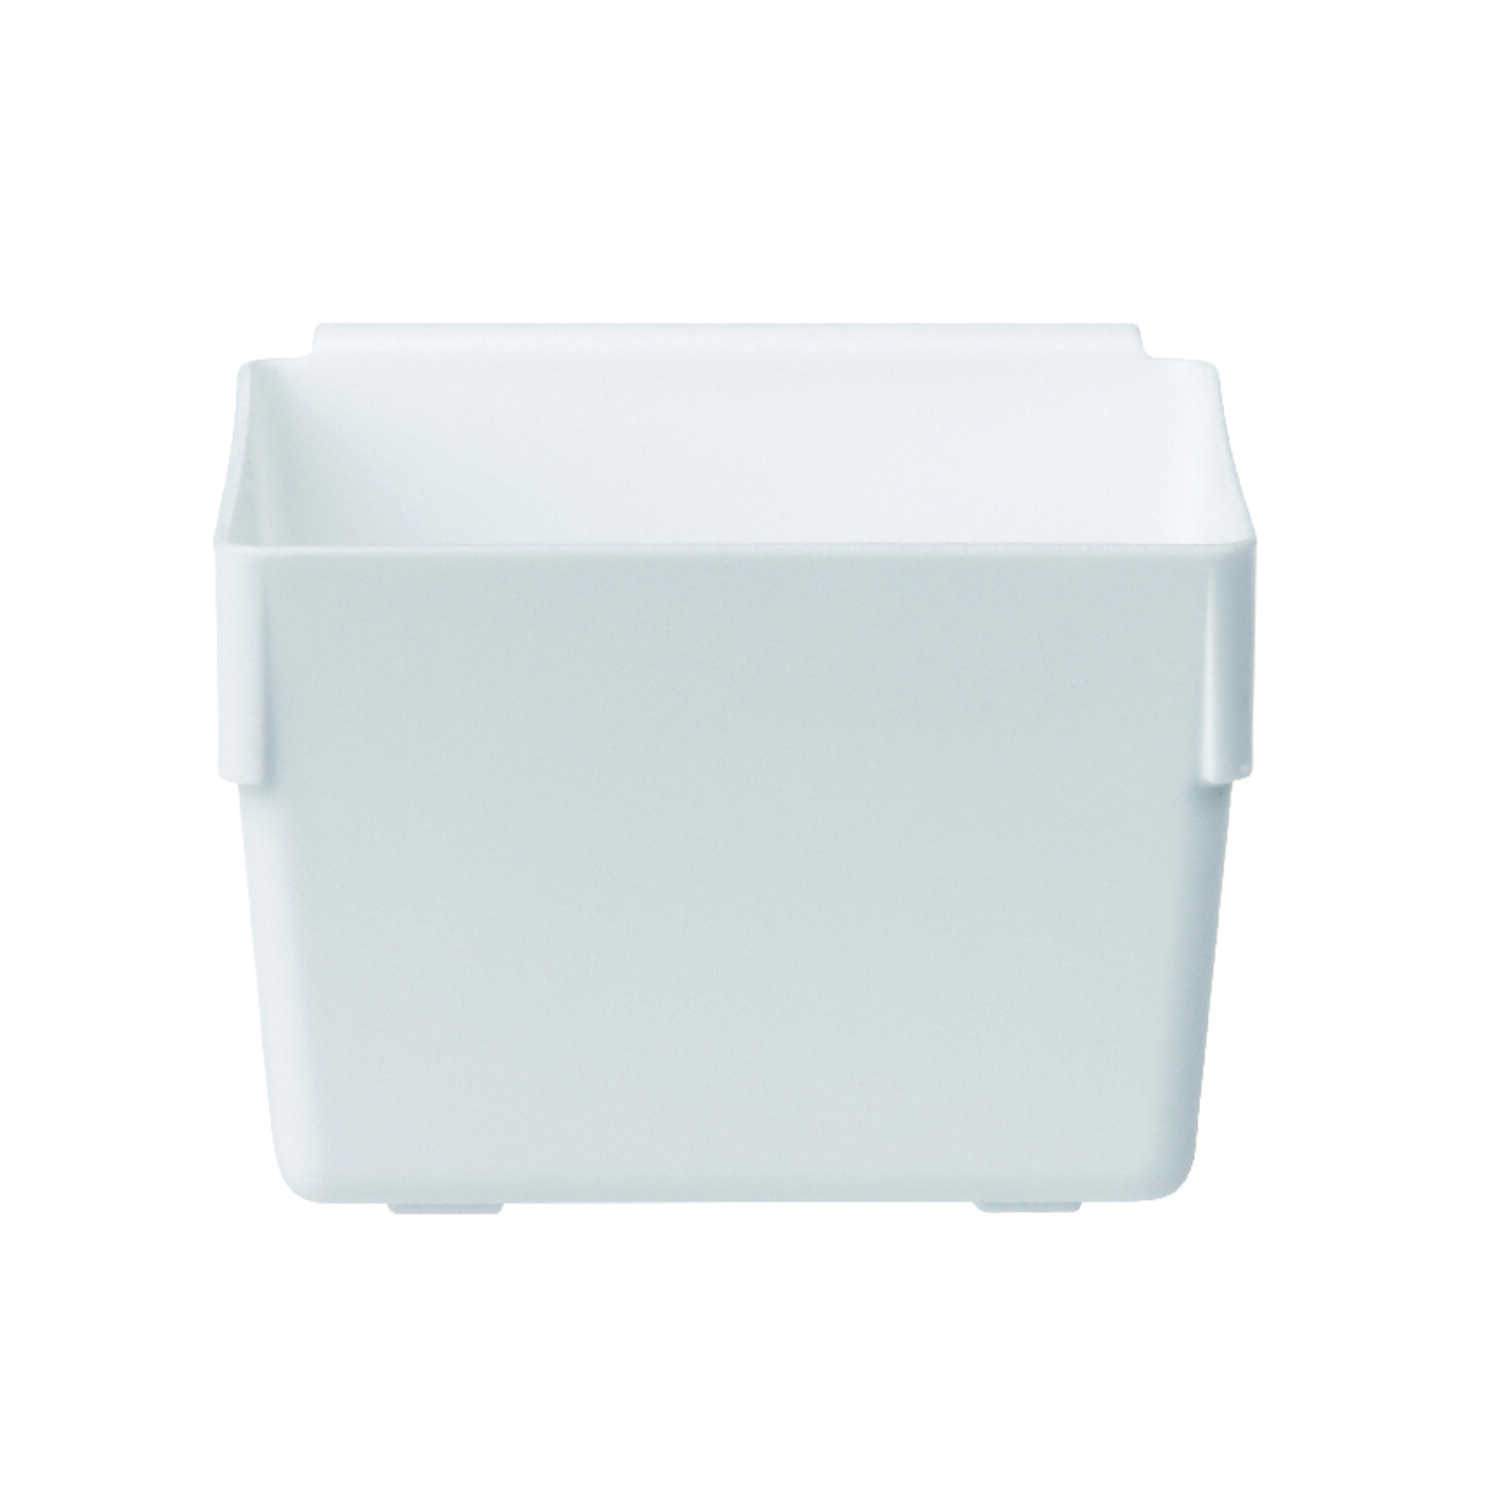 Rubbermaid  2 in. H x 3 in. W x 3 in. L White  Plastic  Drawer Organizer